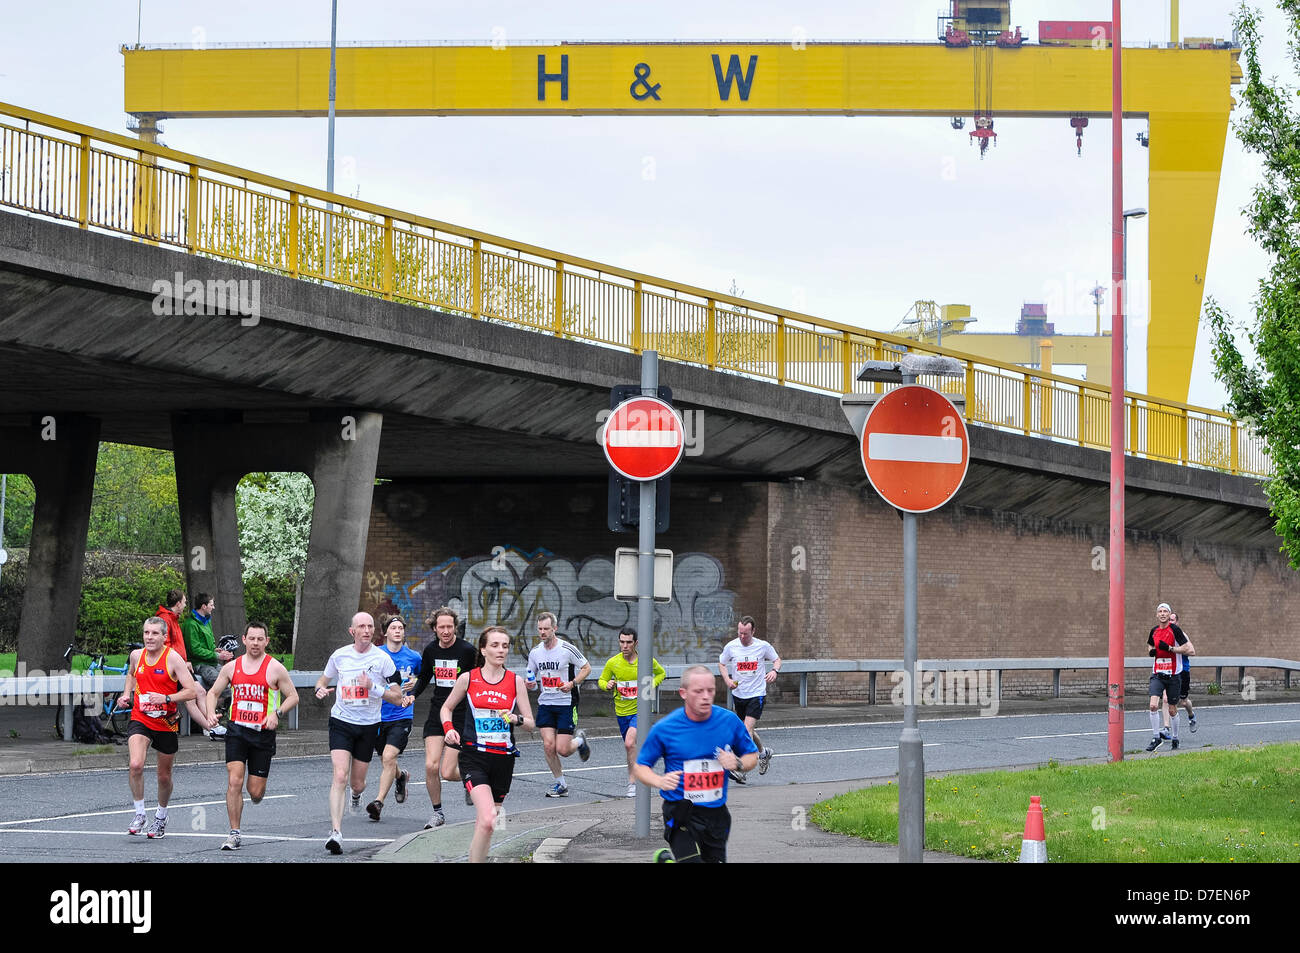 Belfast, Northern Ireland, UK. 6th May 2013. Runners pass the iconic Harland and Wolff cranes as they compete in - Stock Image